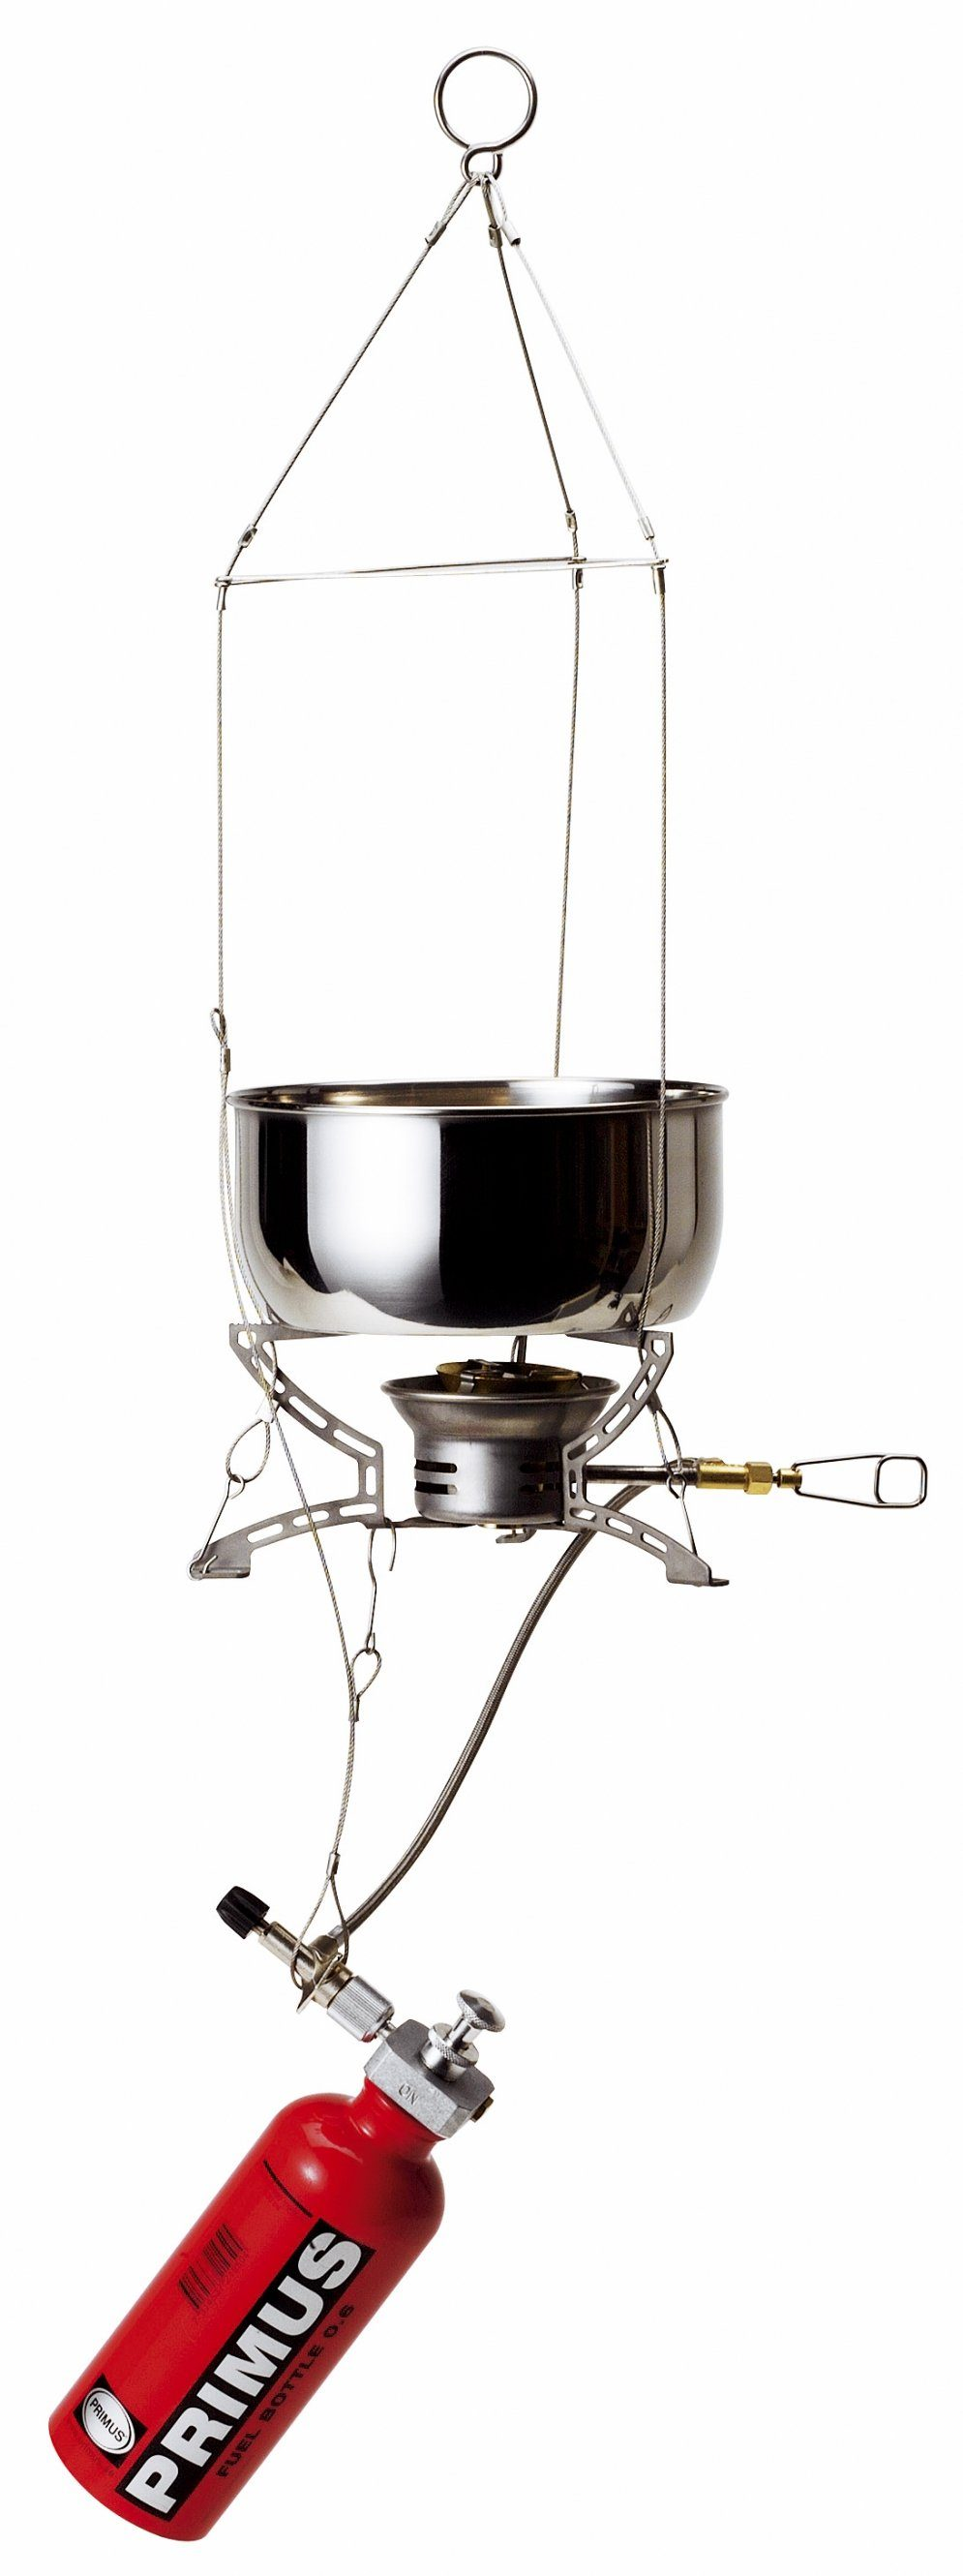 Primus Camping-Kocher »Suspension Kit for 6 Grid Stoves«